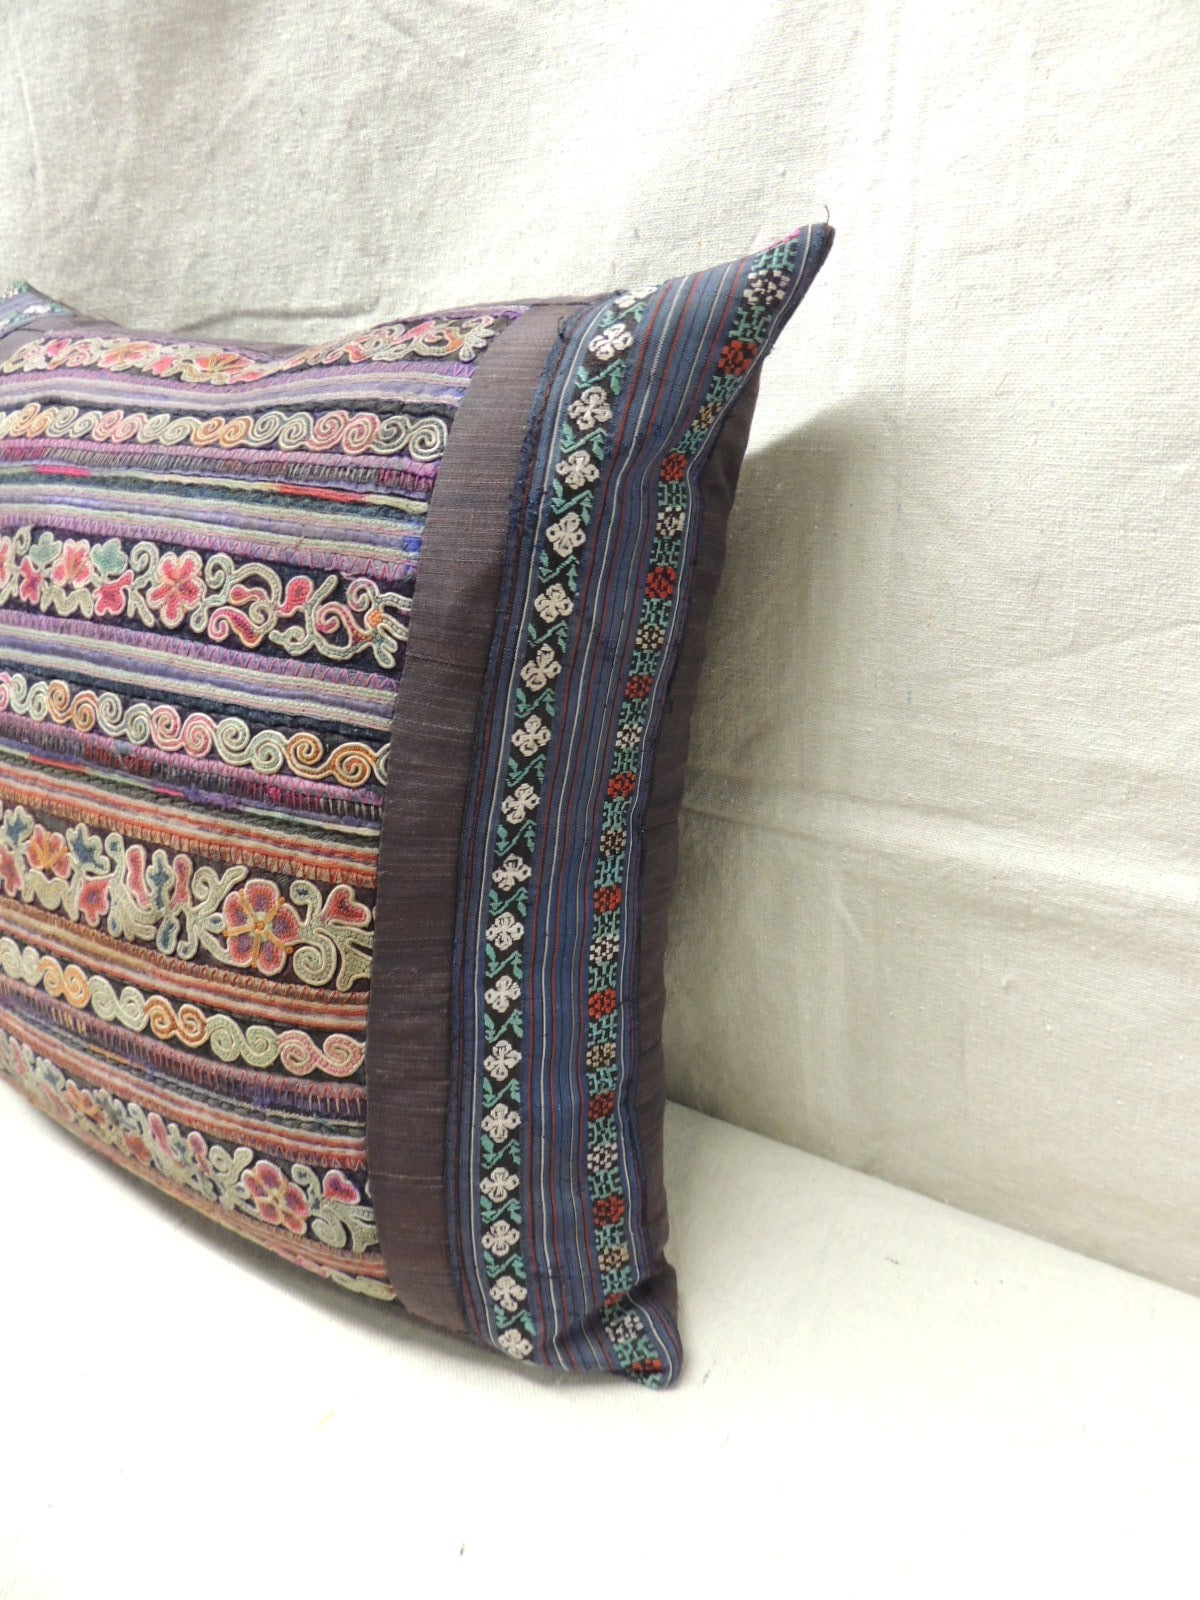 Vintage silk stripe embroidery miao pillows for sale at